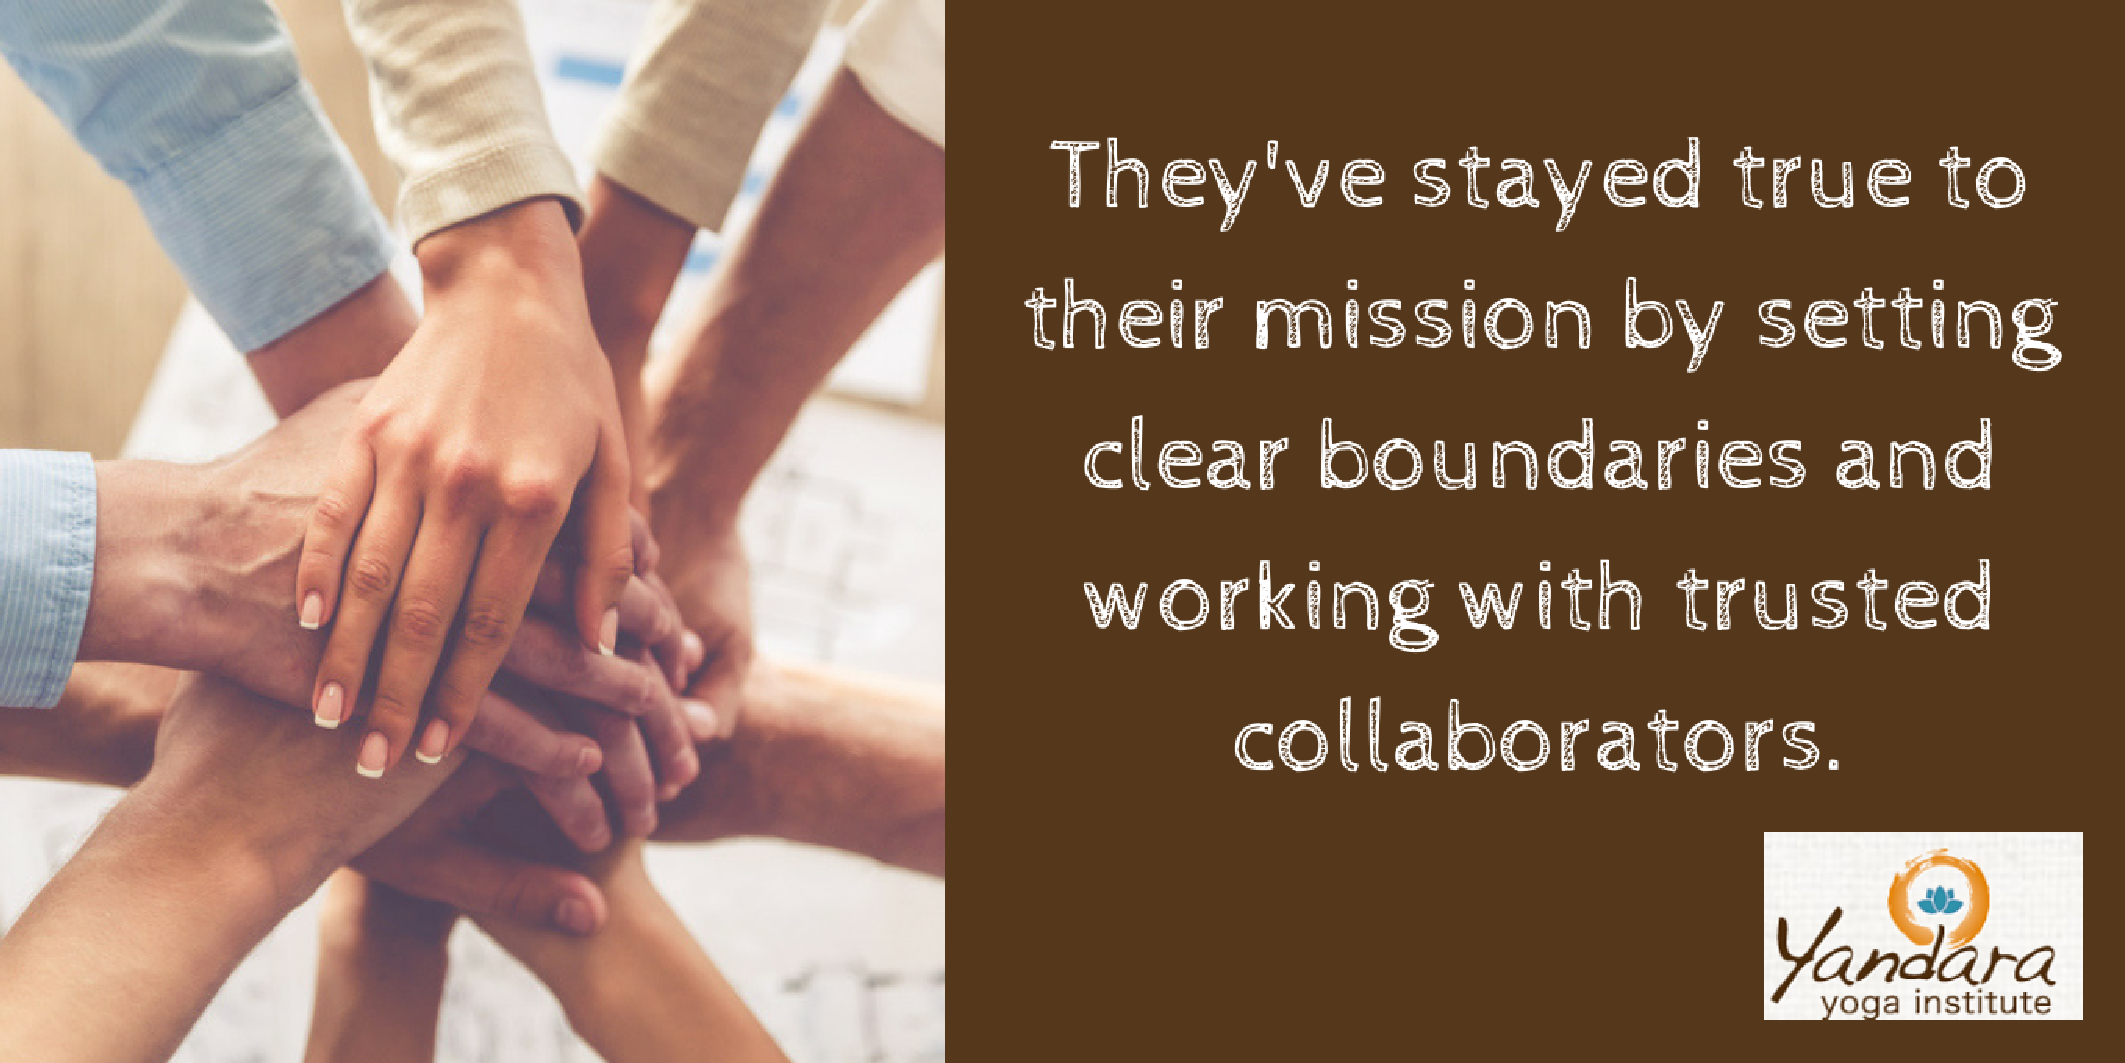 Yoga Trade works with trusted collaborators.